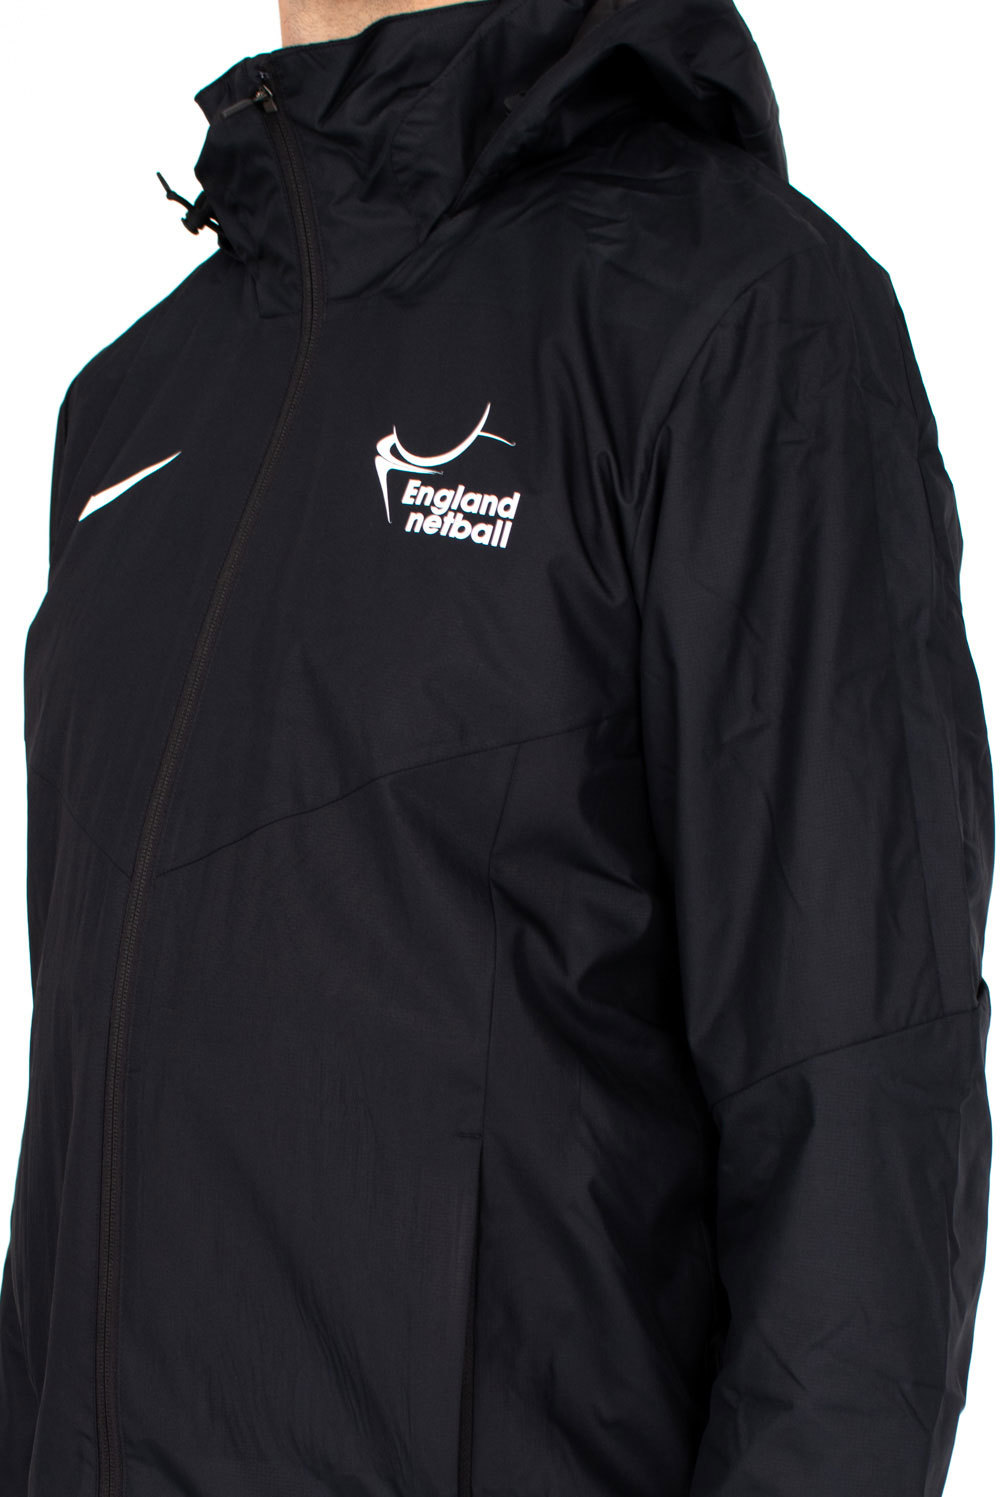 Team White Nike Academy 18 Rain Jacket